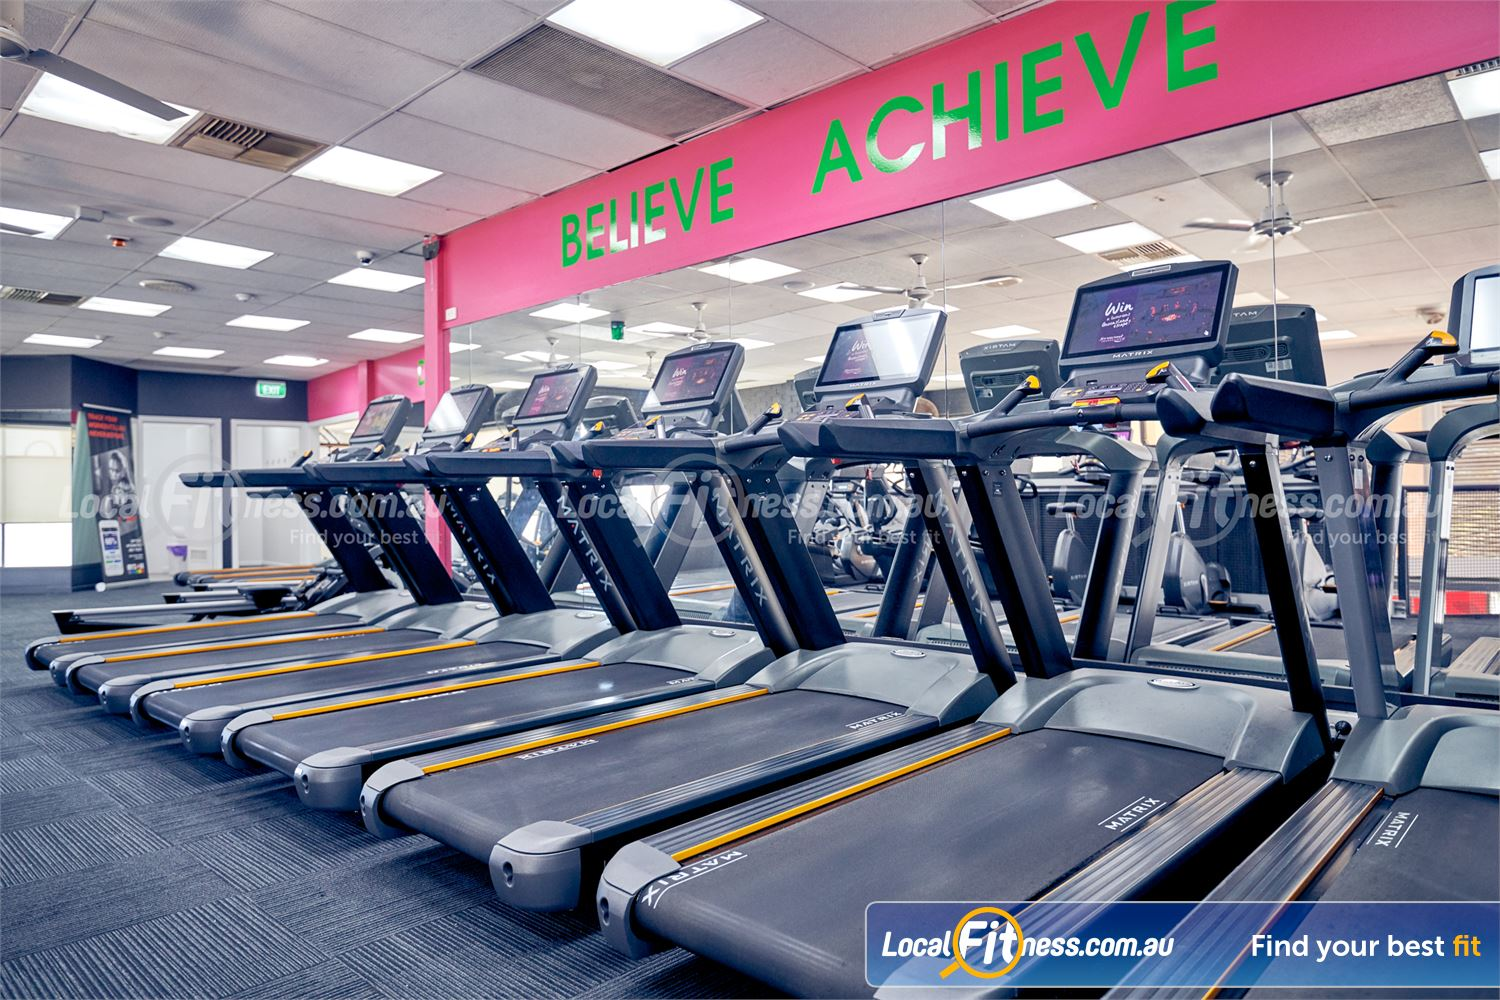 Fernwood fitness 24 7 gym access tullamarine calling all for Fitness 24 7 mobilia